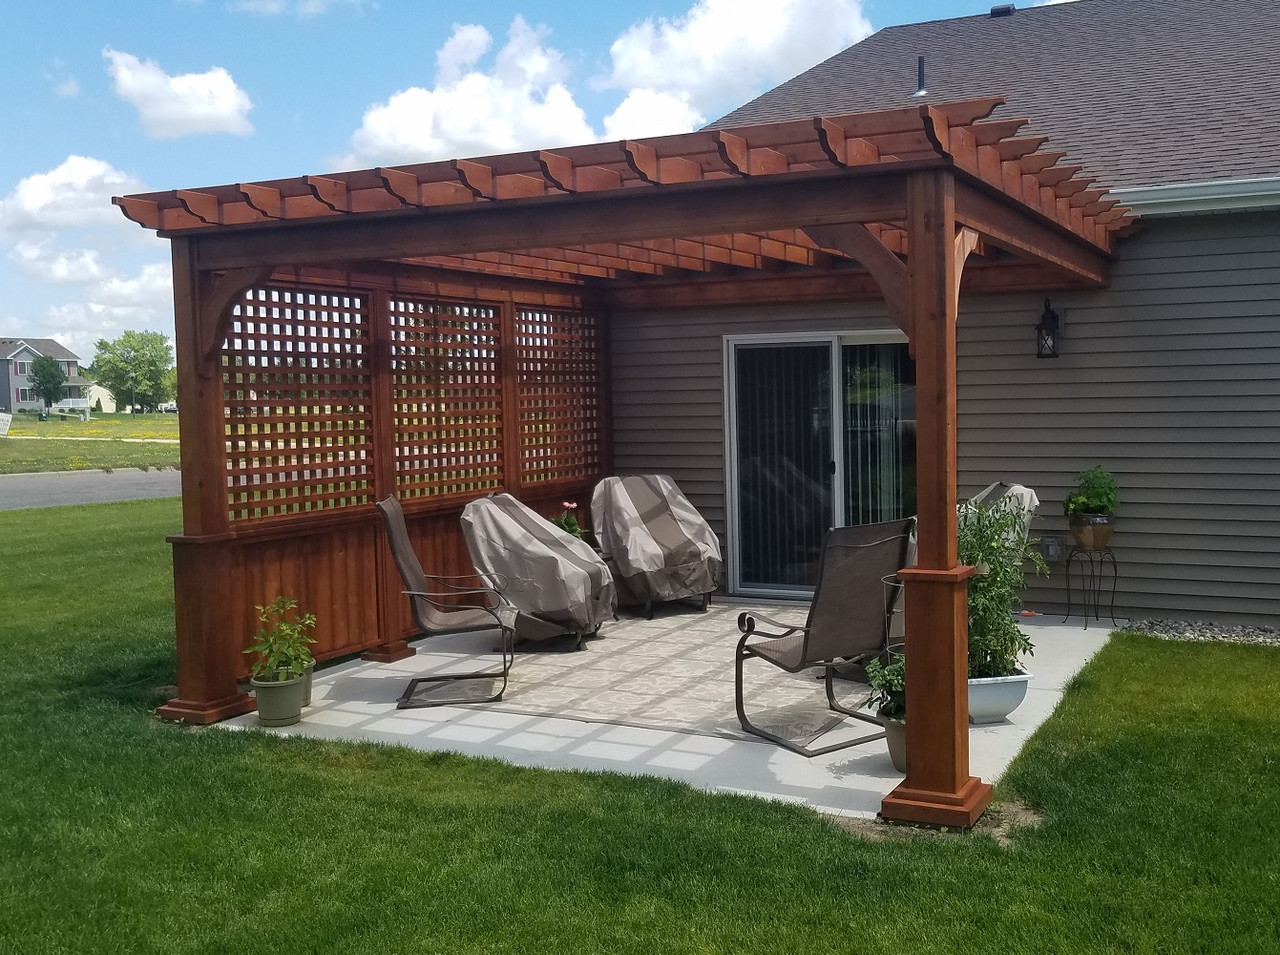 13x13 Serenity Cedar Wall Mounted Pergola with Lattice Privacy Wall, Sartell, Minnesota